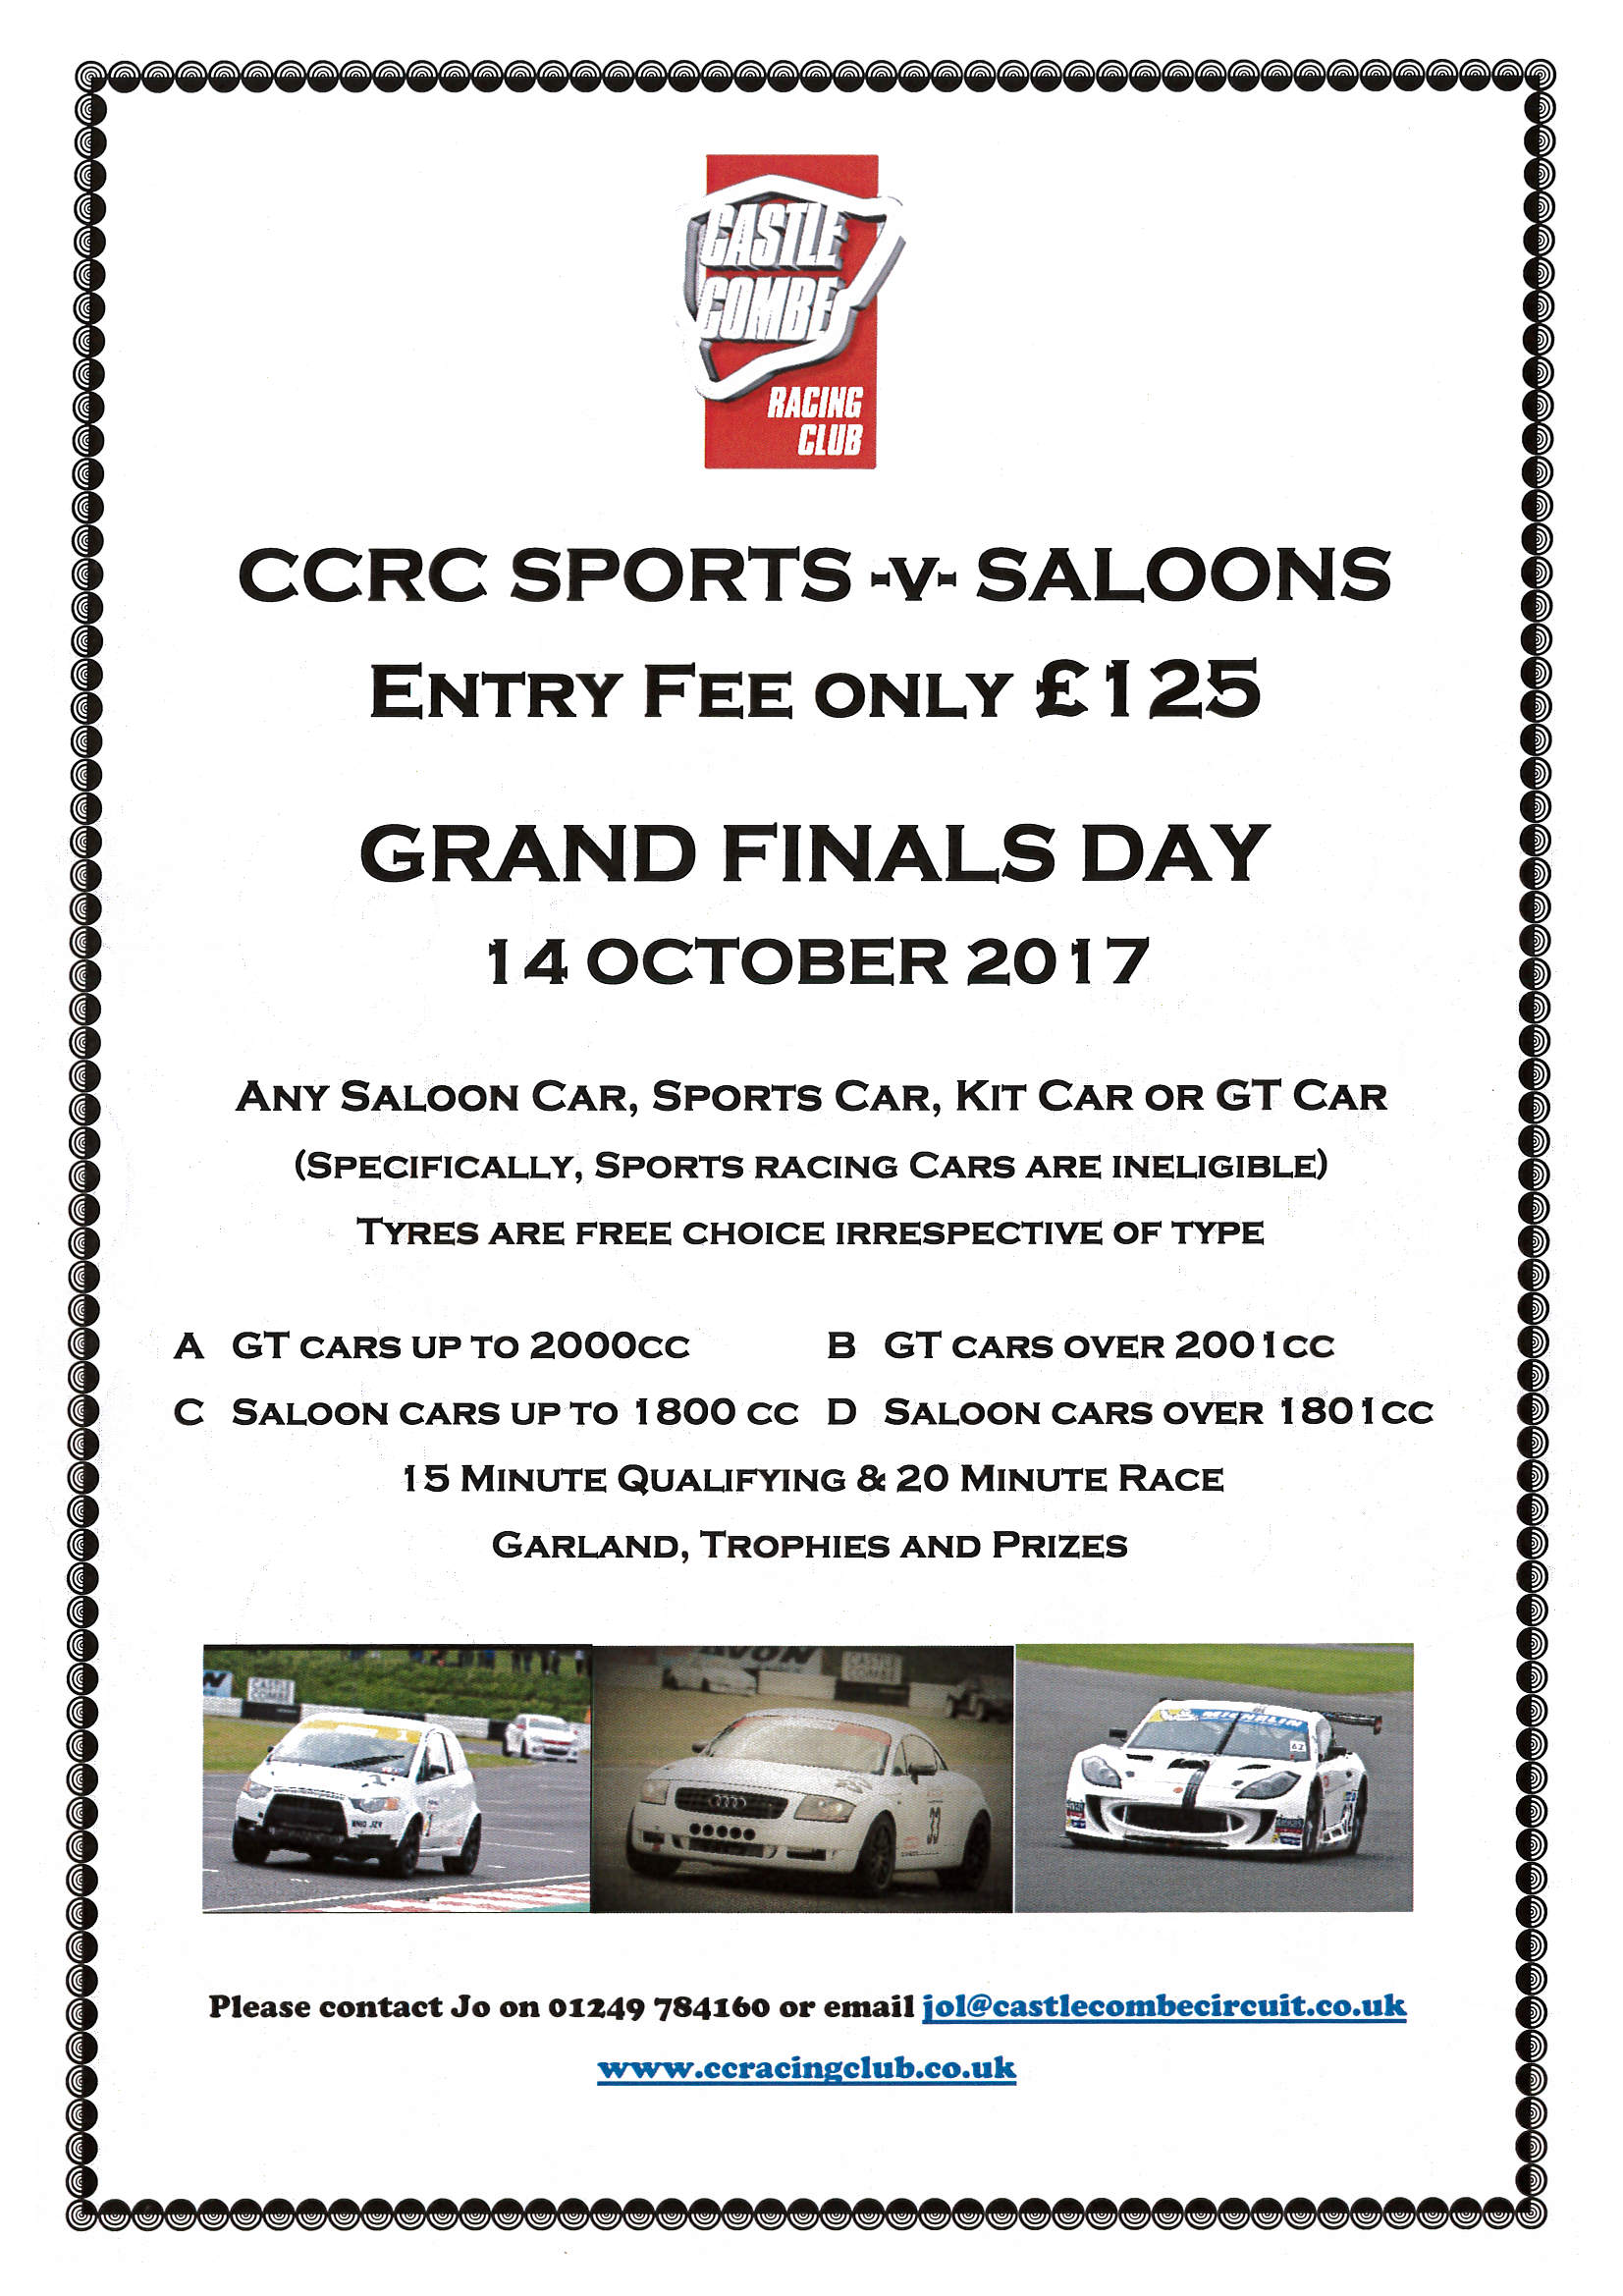 CCRC Sports vs Saloons